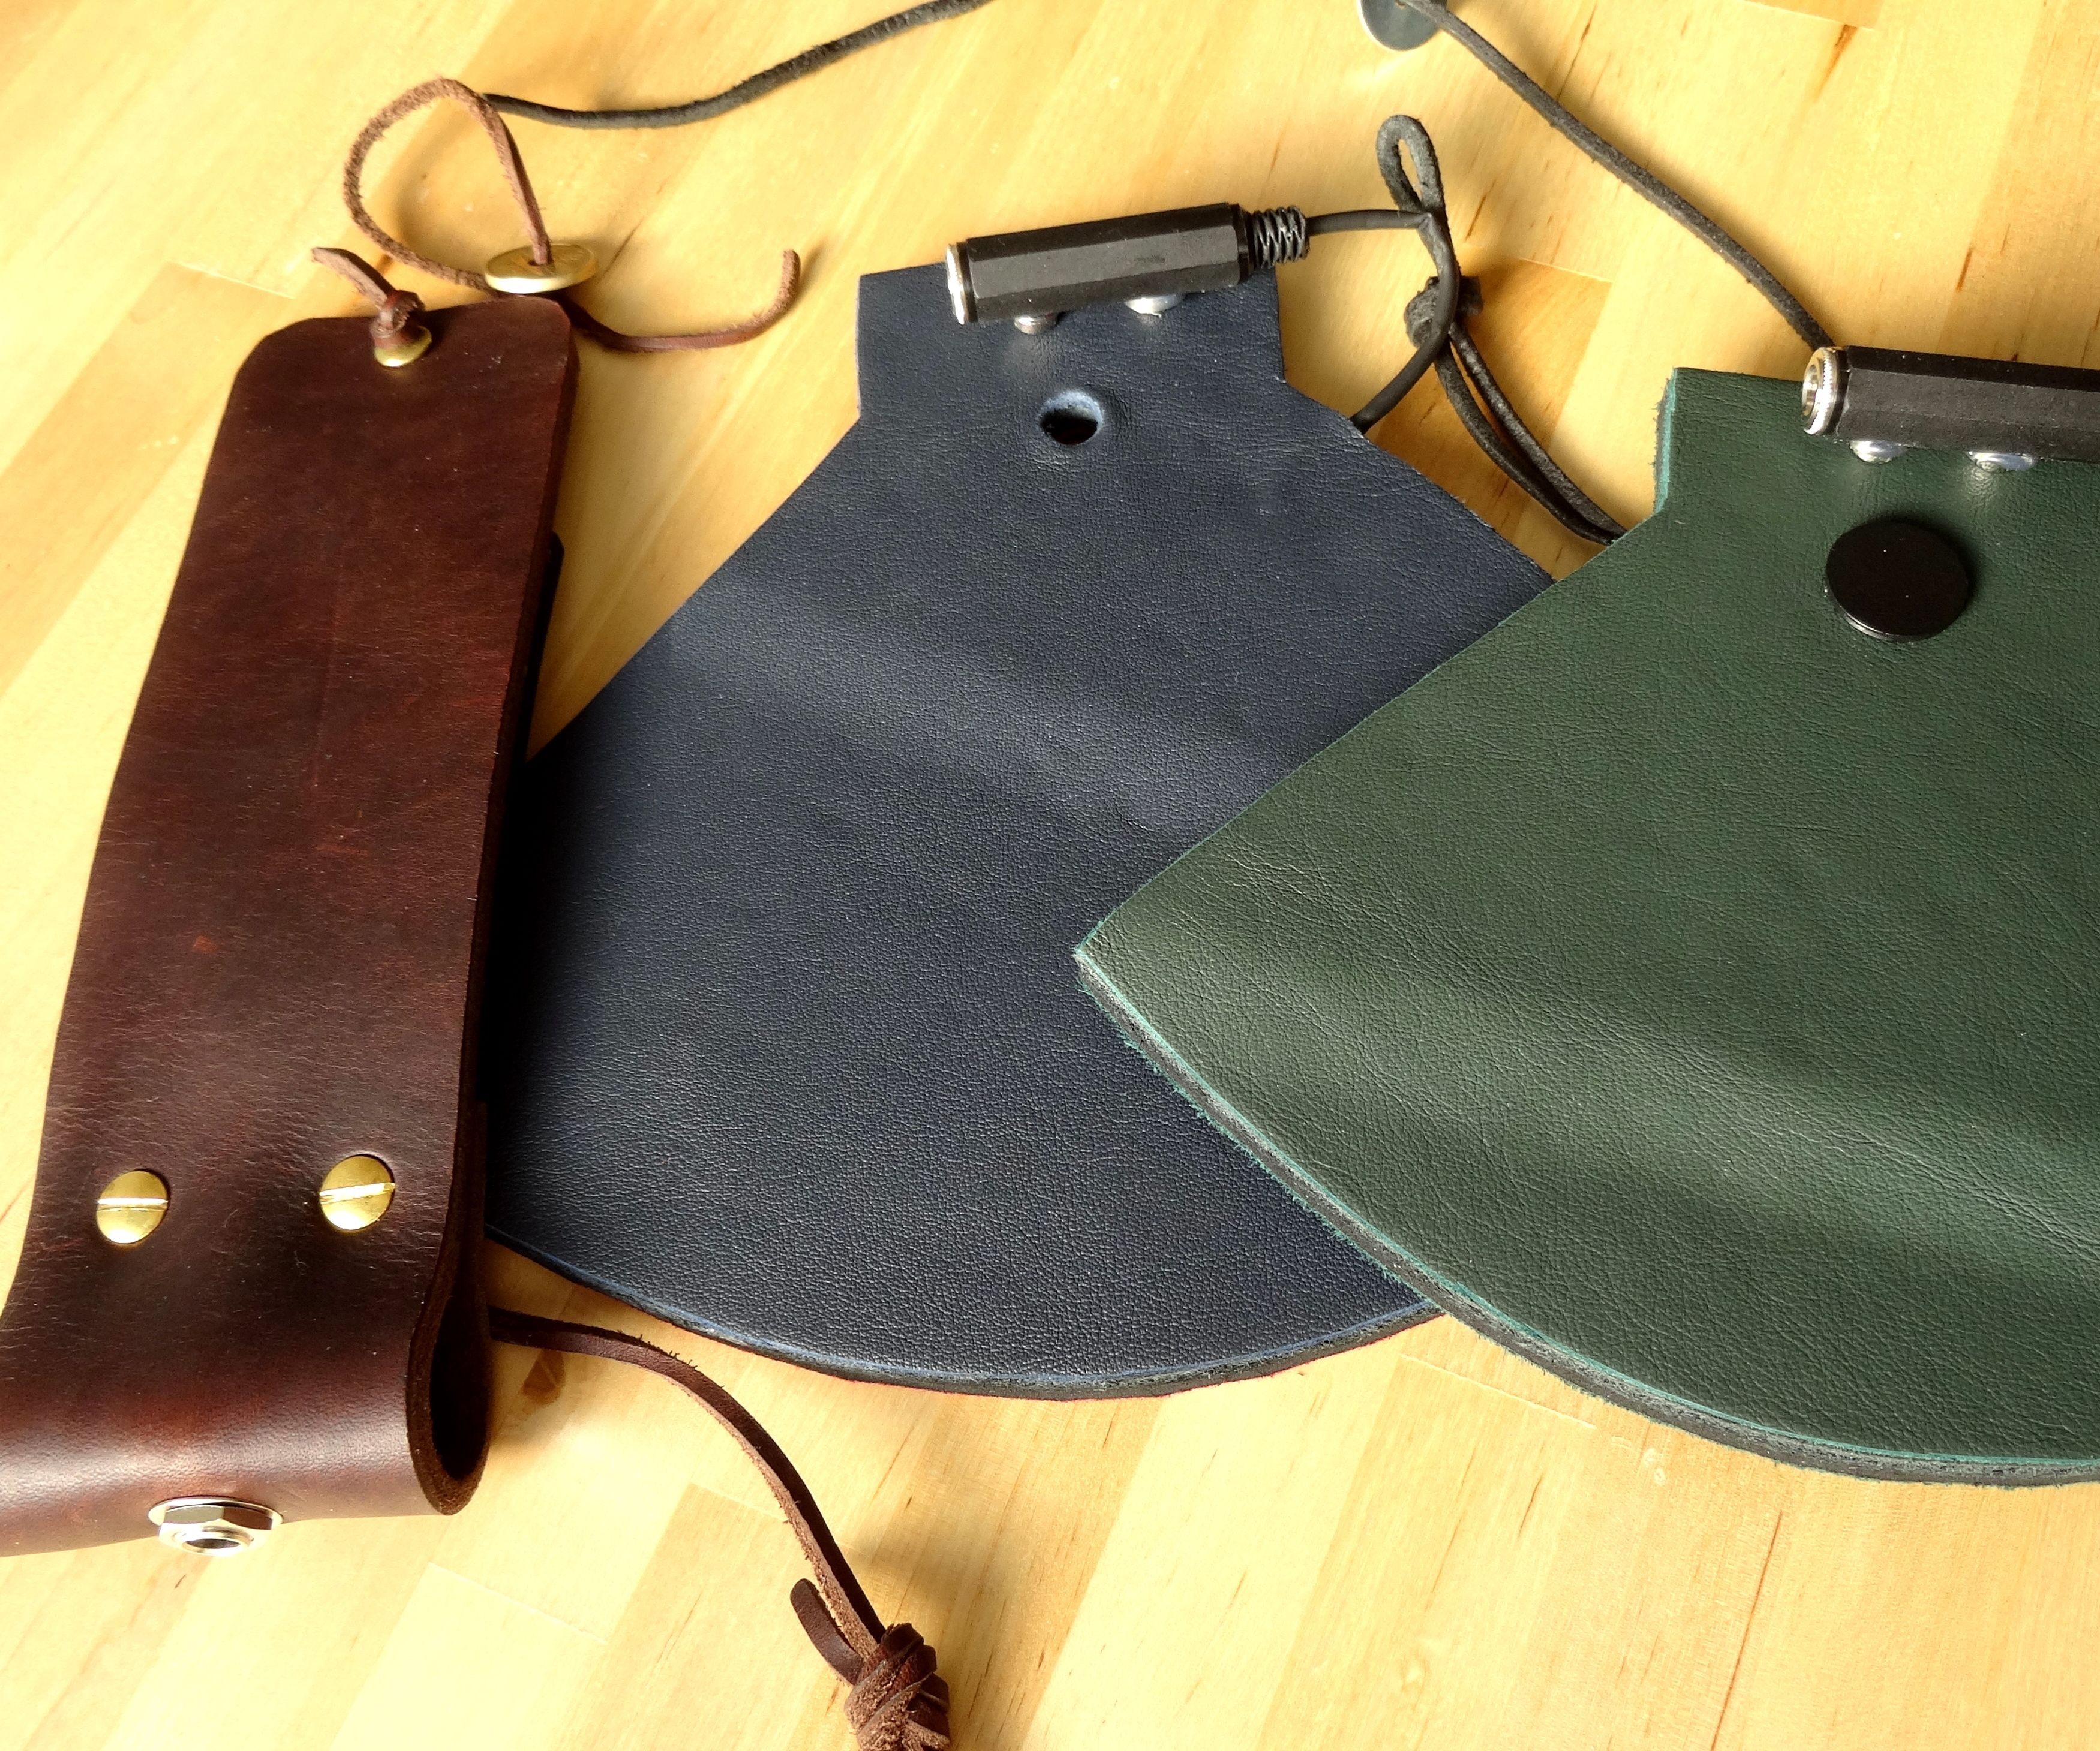 DIY Leather Pads - How to Make Sound With Leather and Piezoelectric